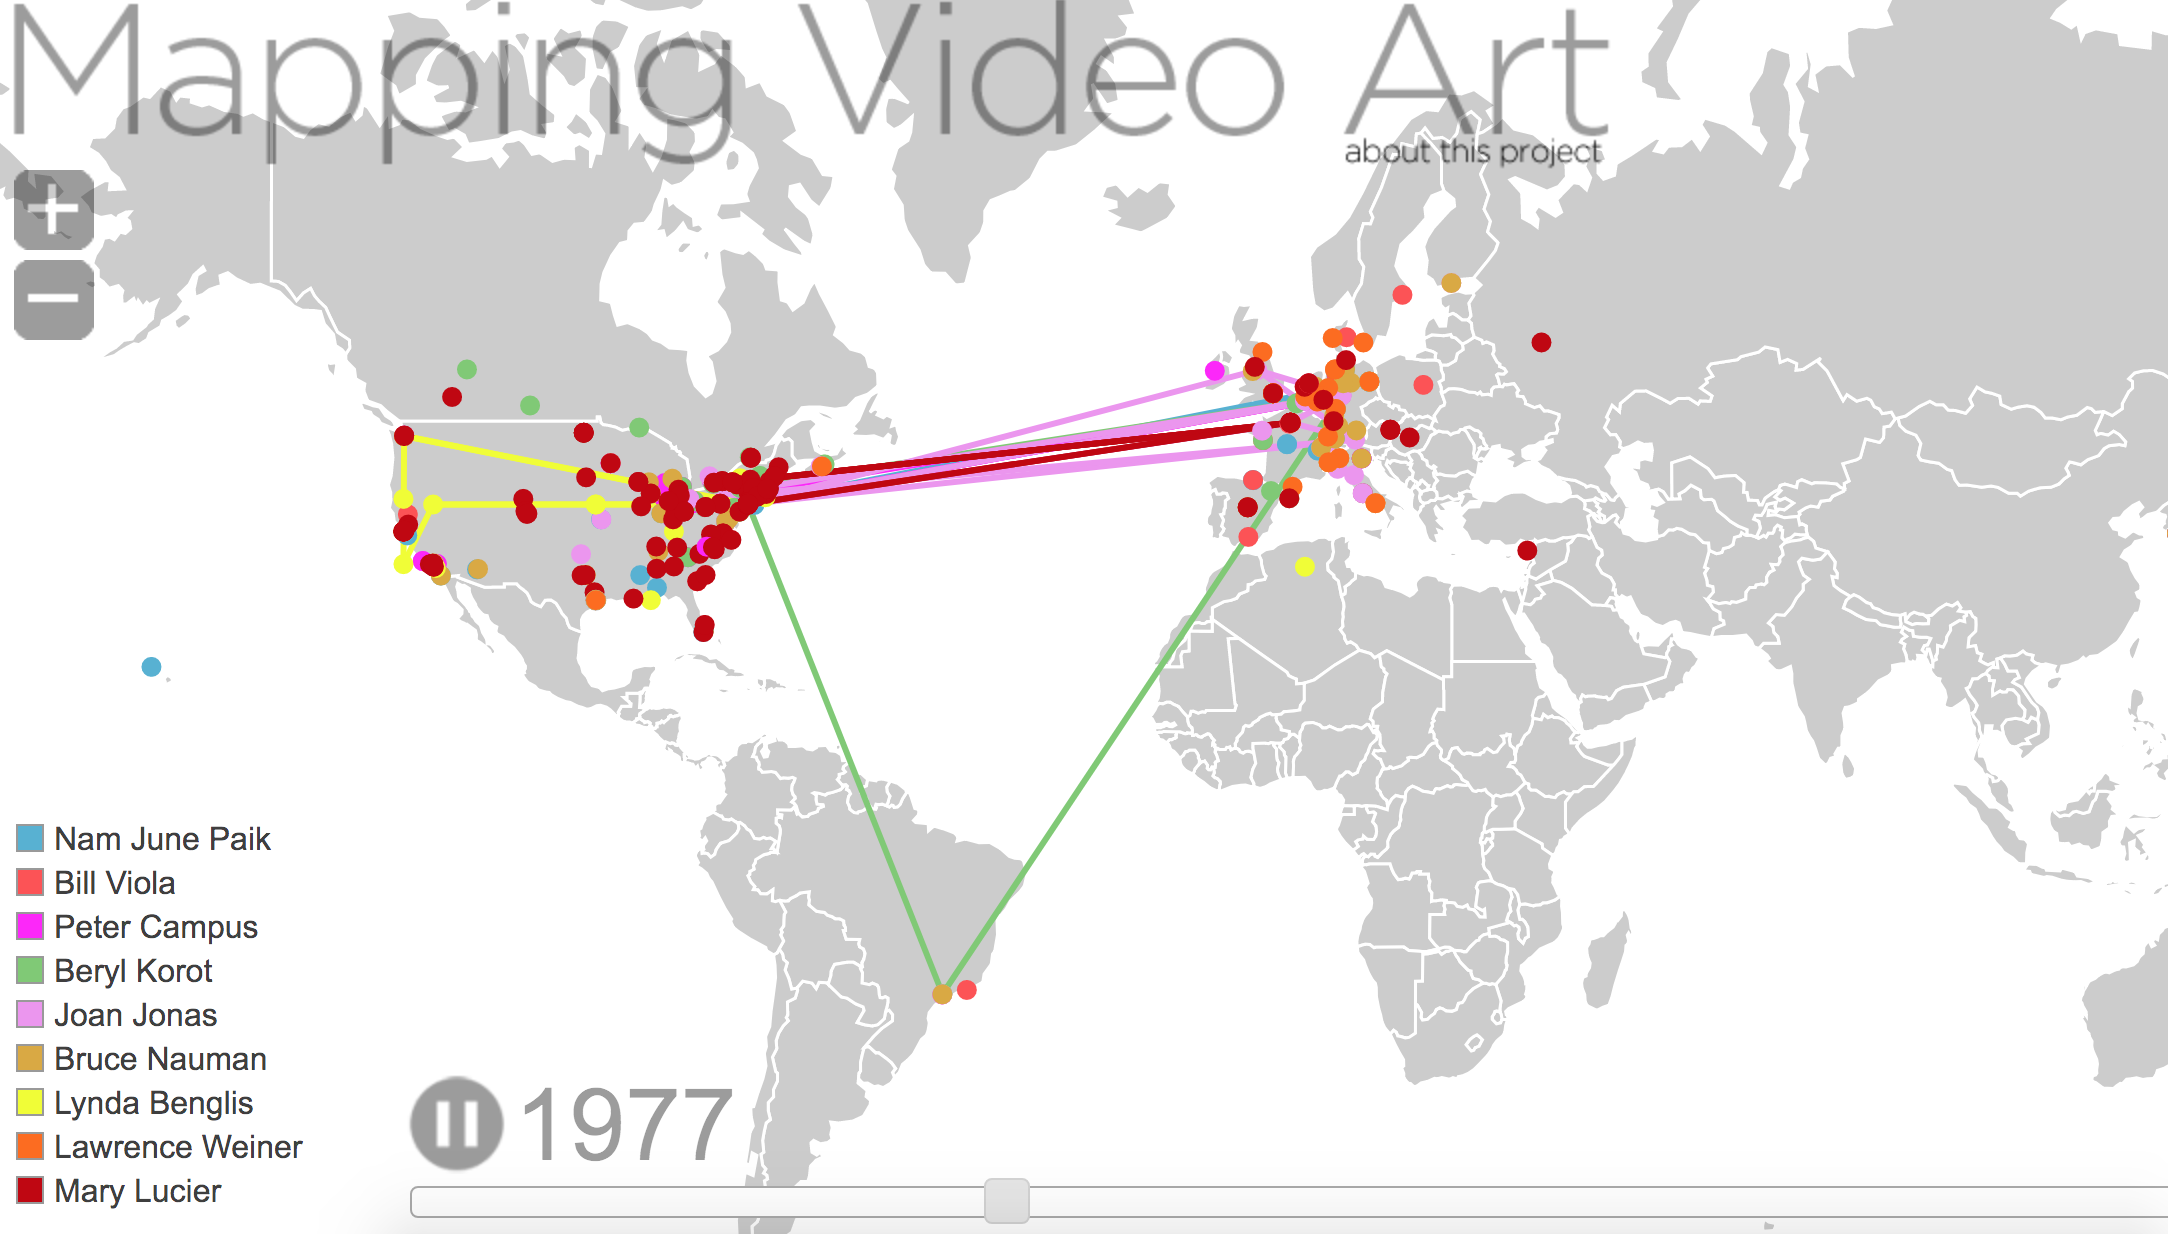 Mapping Video Art